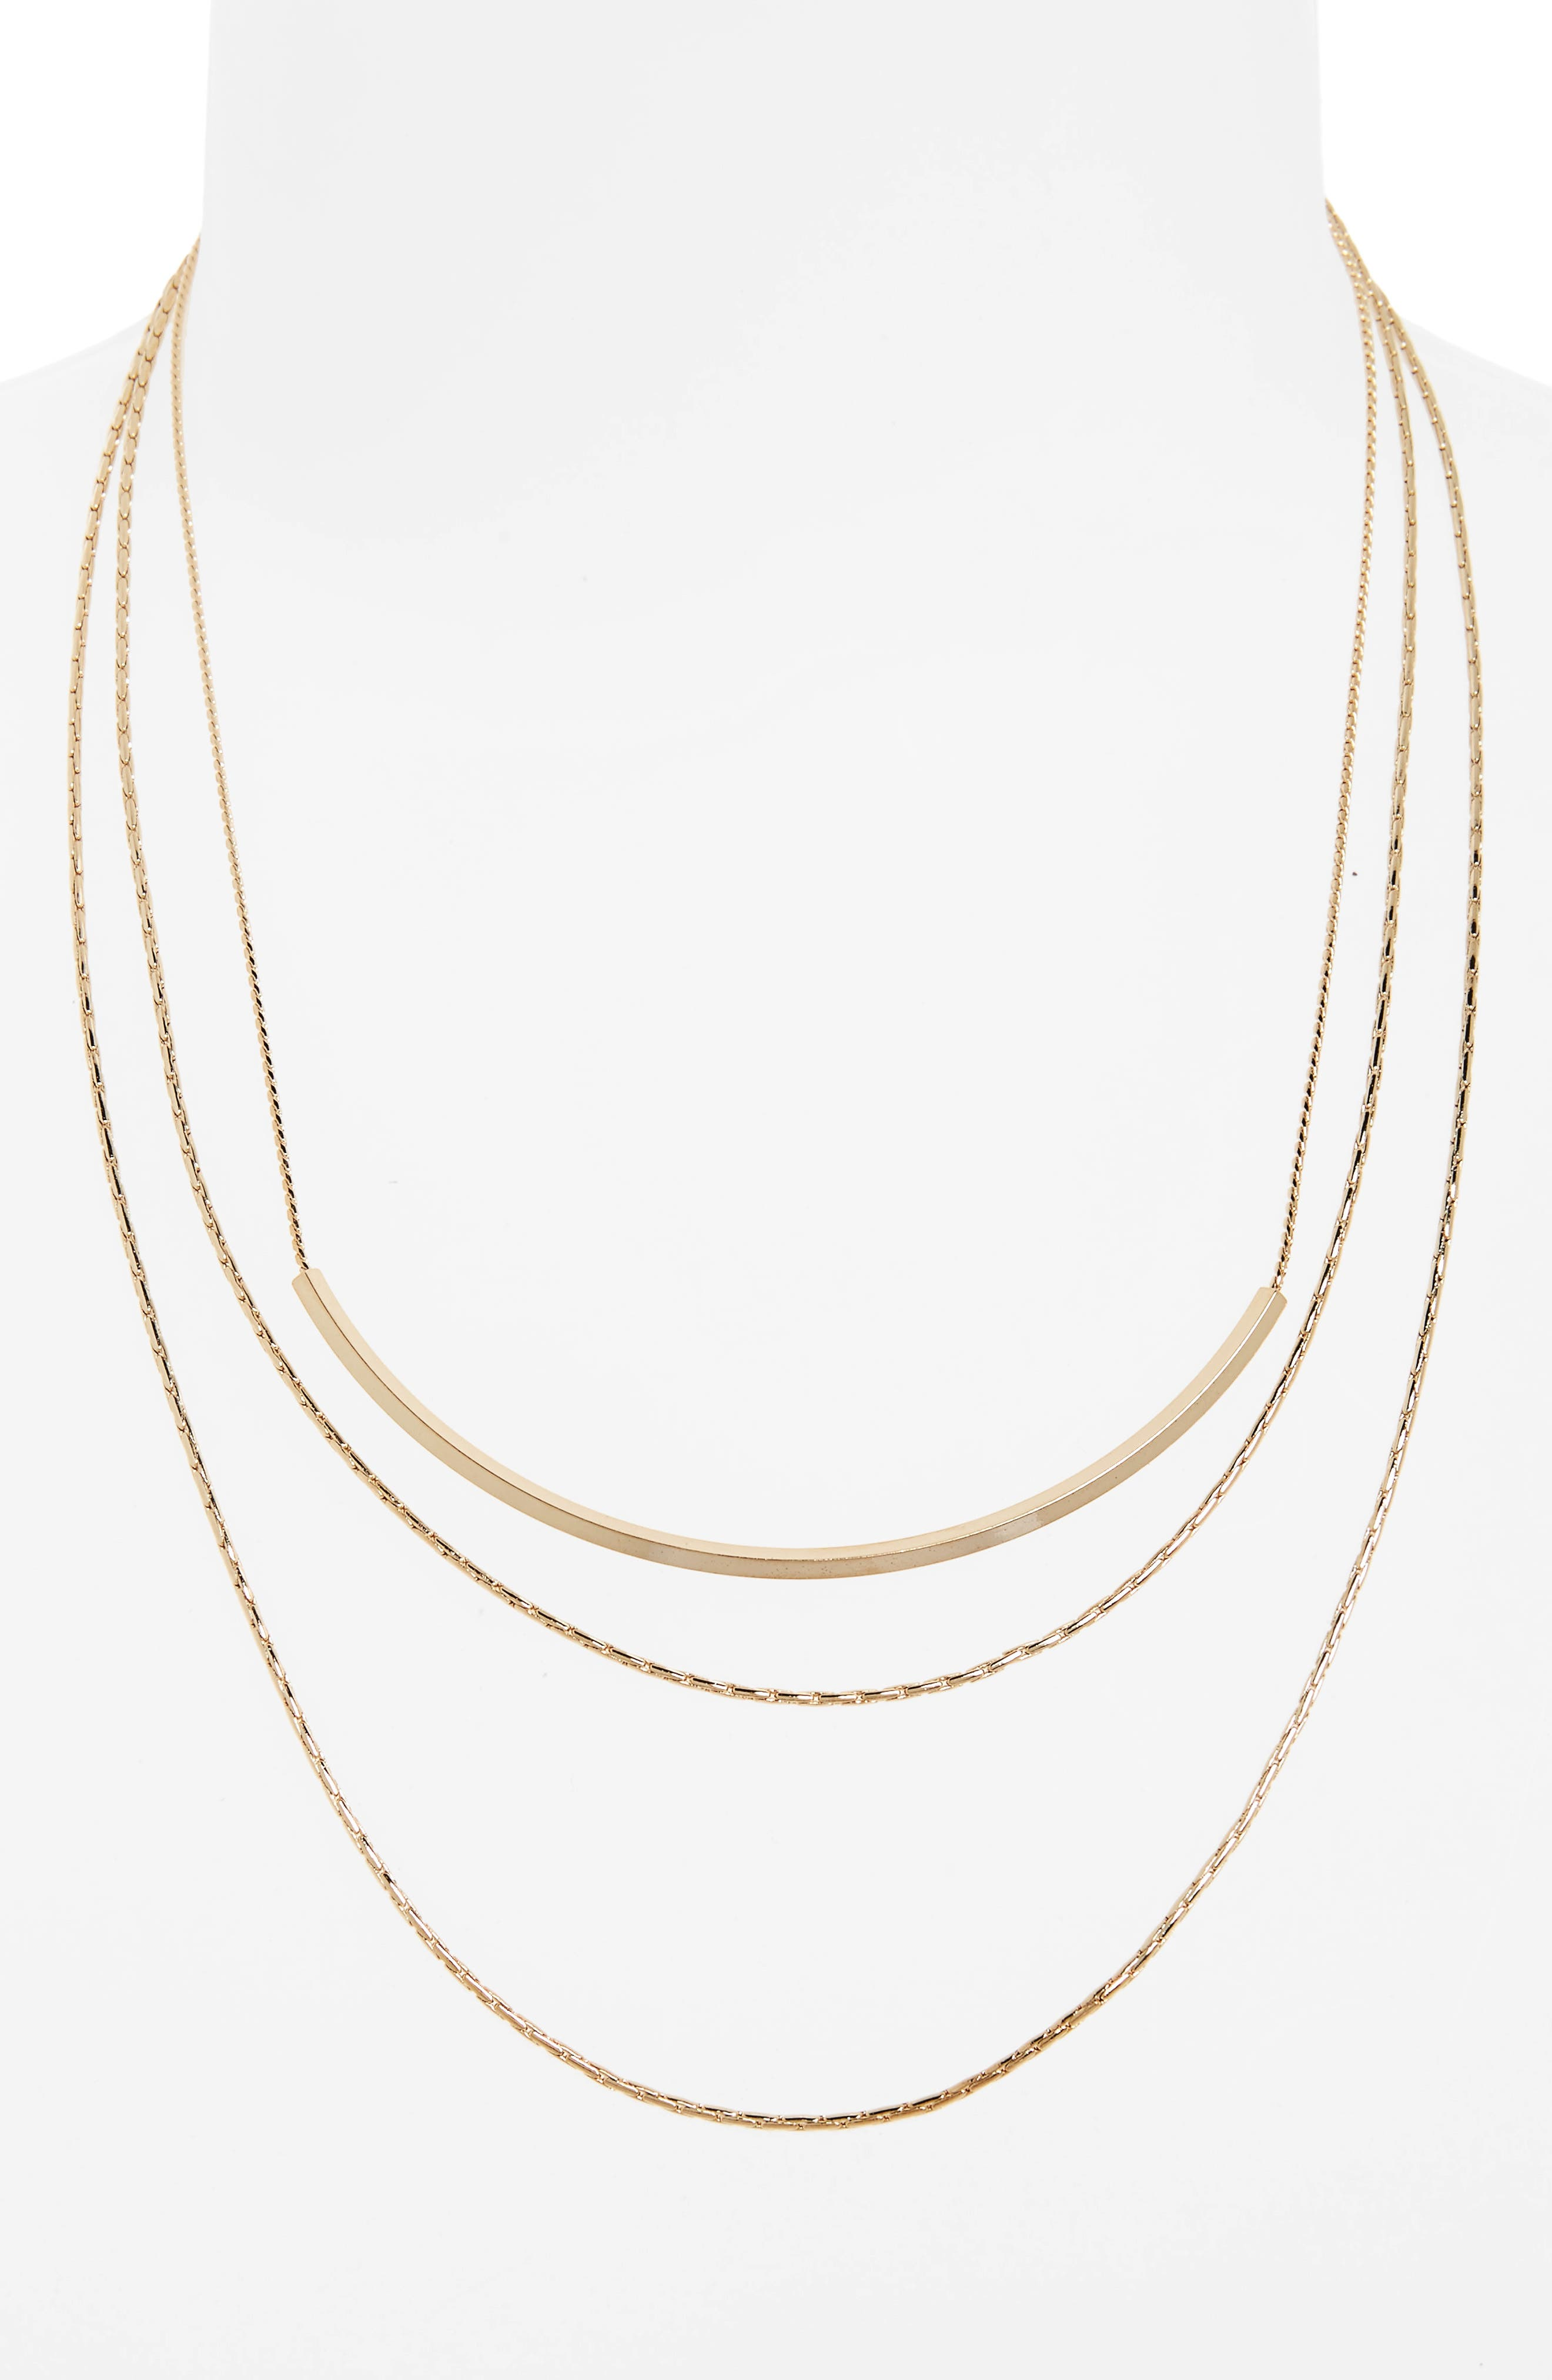 Main Image - Panacea Layered Chain Necklace